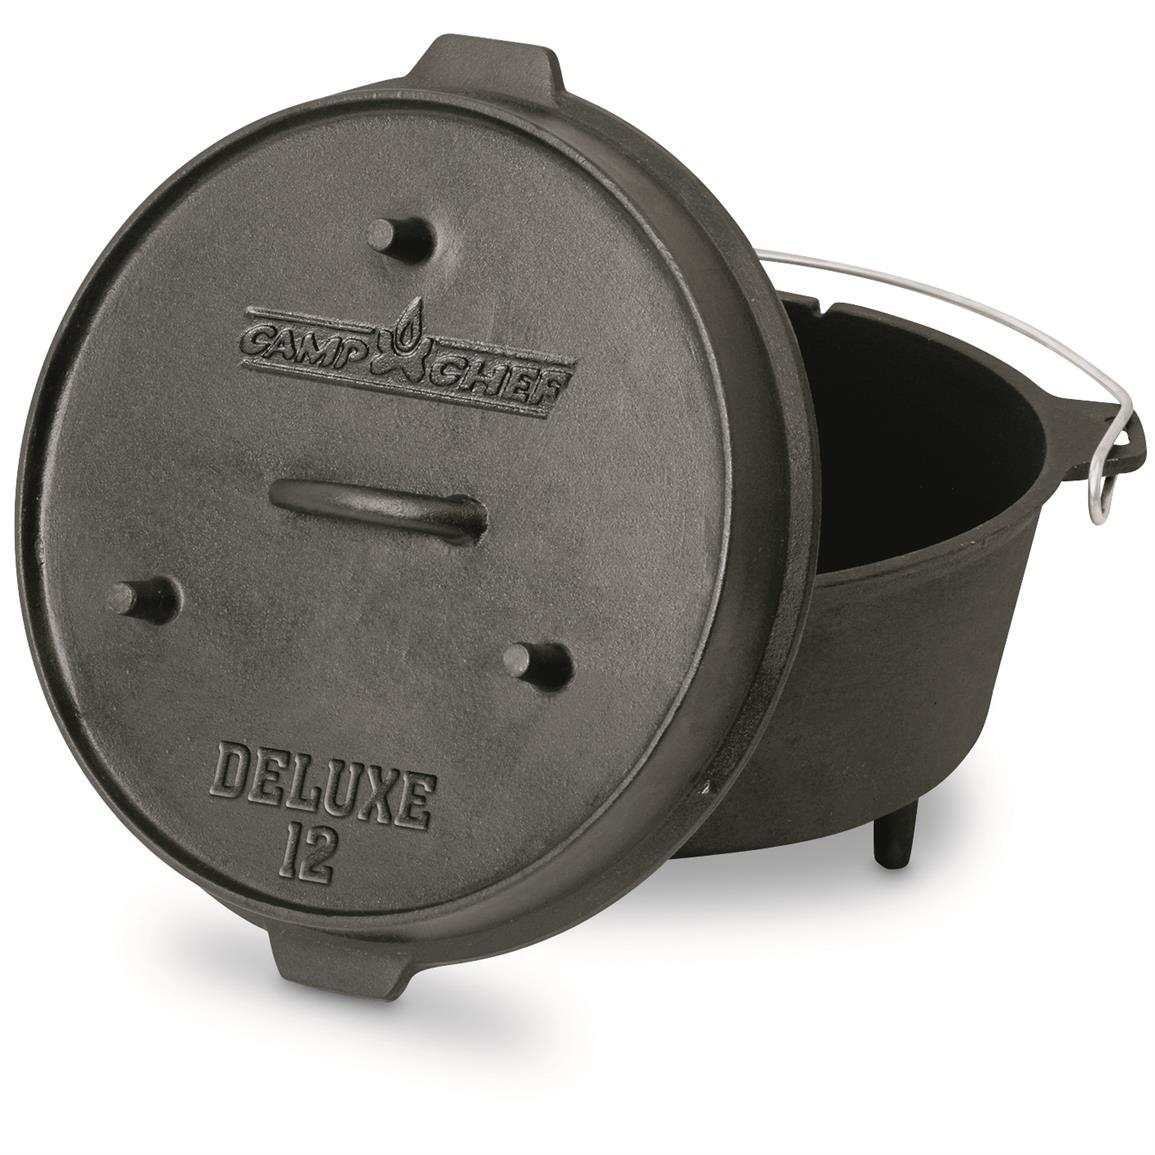 "Camp Chef 12"" 8 Quart Cast Iron Deluxe Deep Dutch Oven"